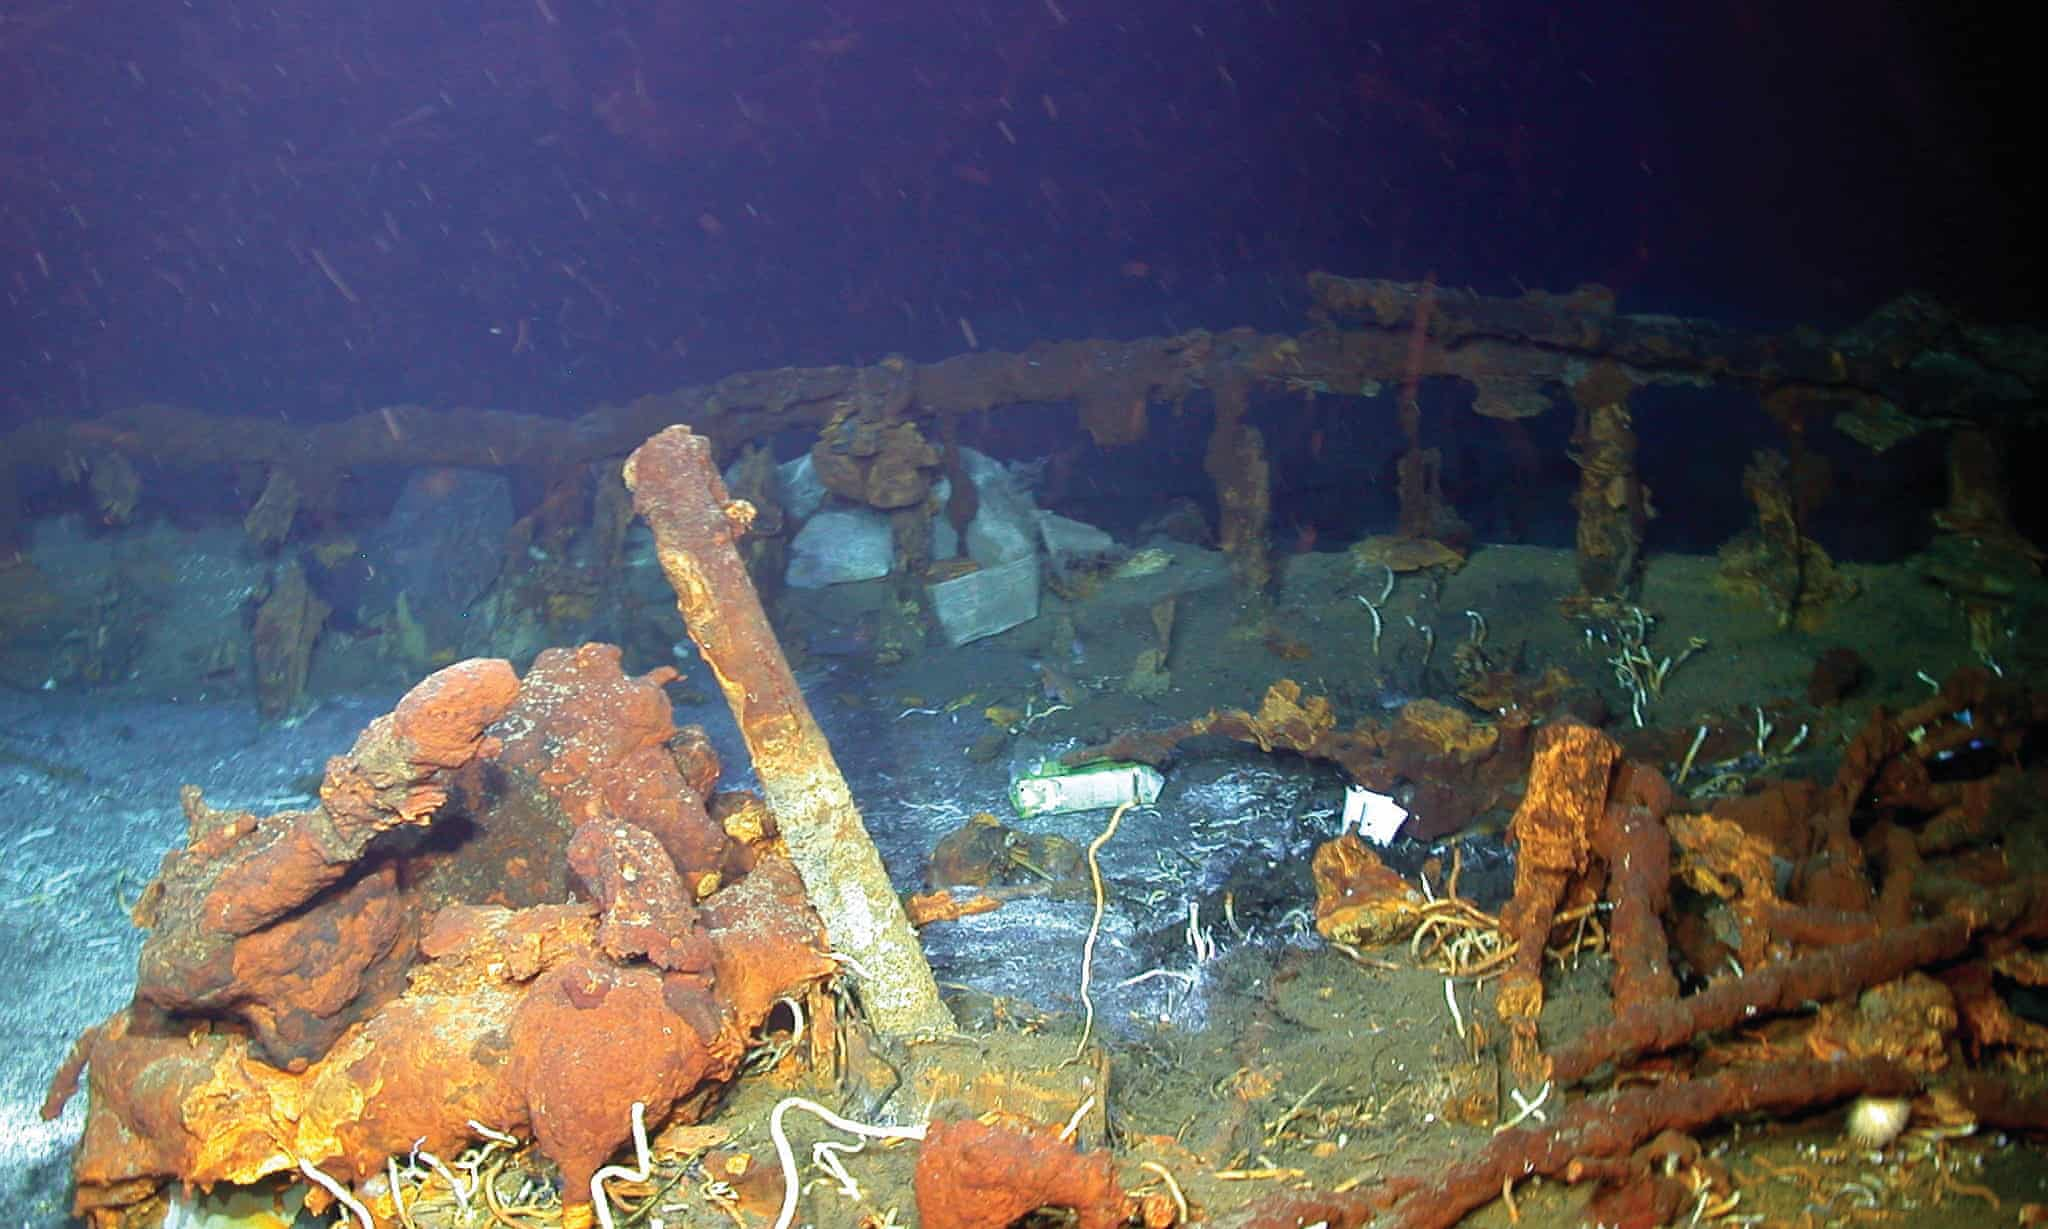 Ancient Shipwrecks In The Mediterranean Provide Insights Into The Start Of Global Trade